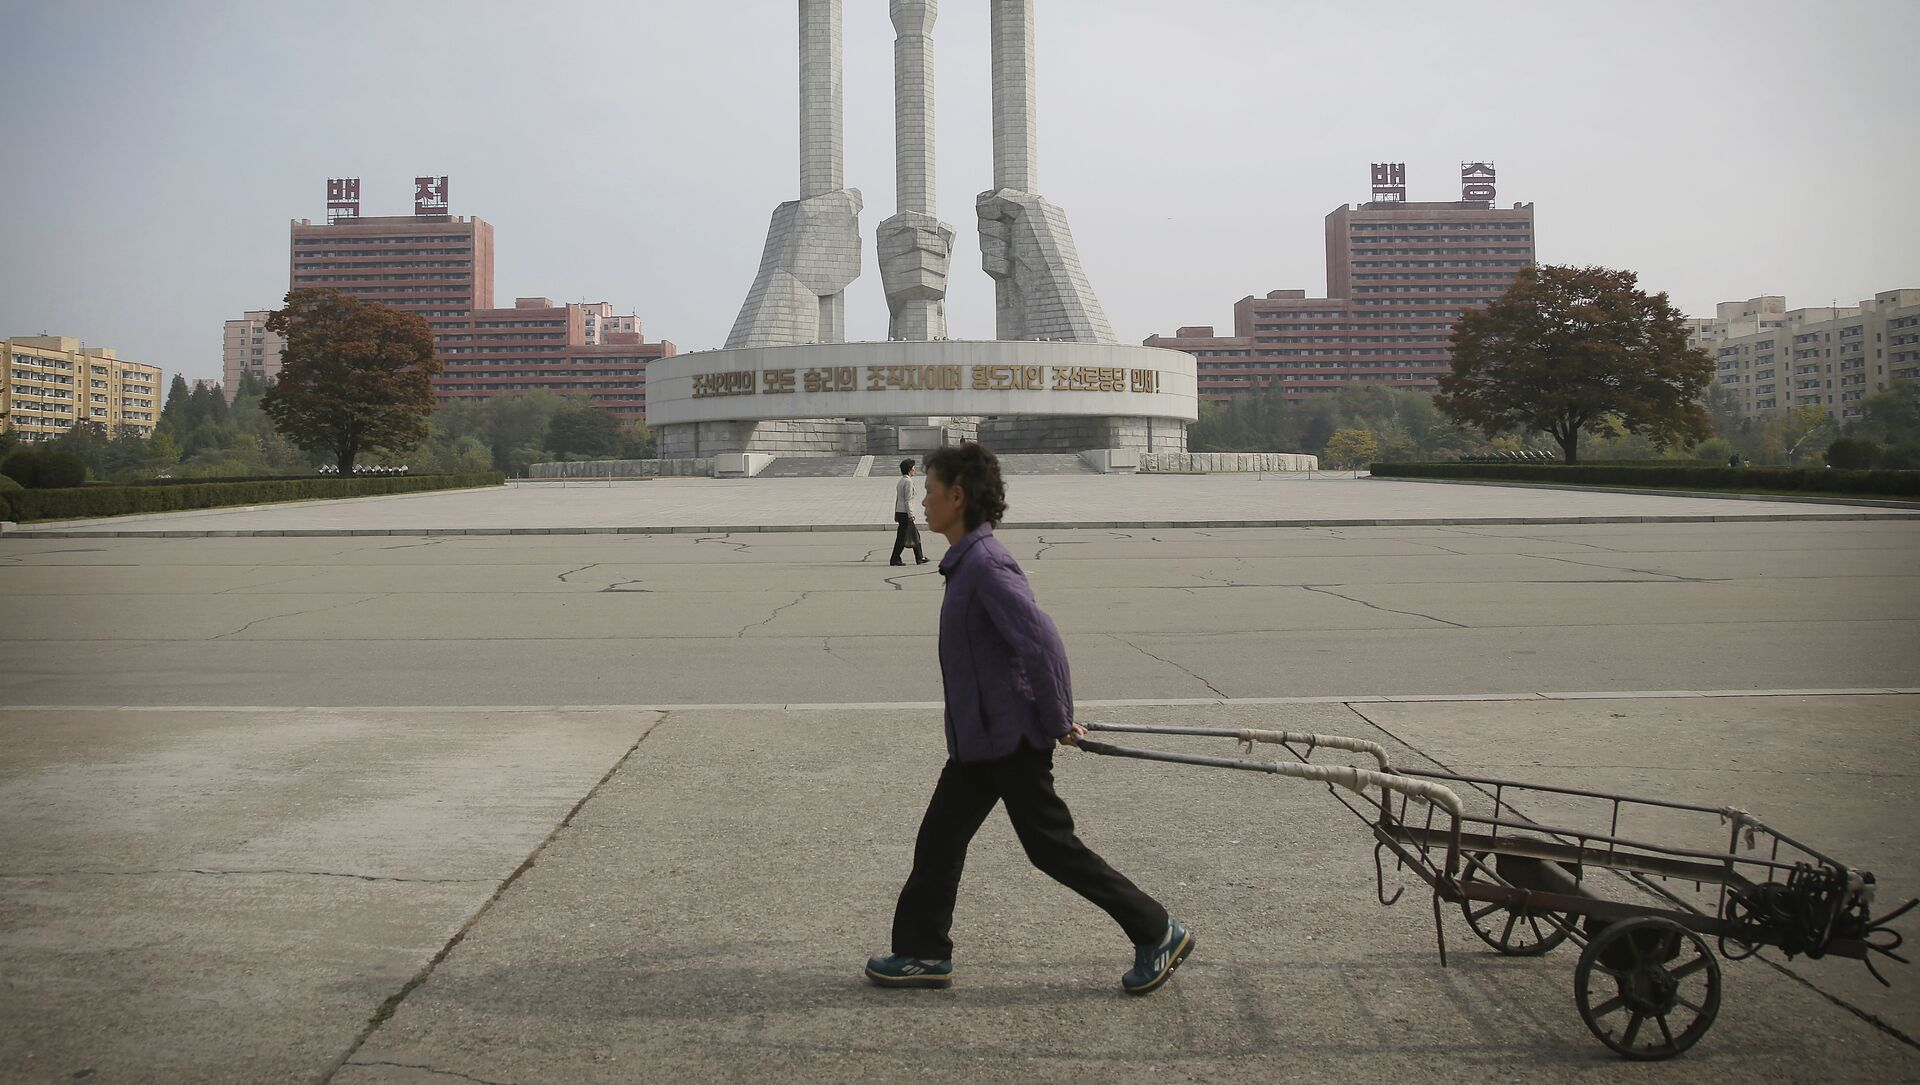 North Korean women walk past a monument built 11 years ago to honor the founding of the Workers' Party of North Korea on Saturday, Oct. 15, 2016, in Pyongyang, North Korea - Sputnik Mundo, 1920, 02.02.2021